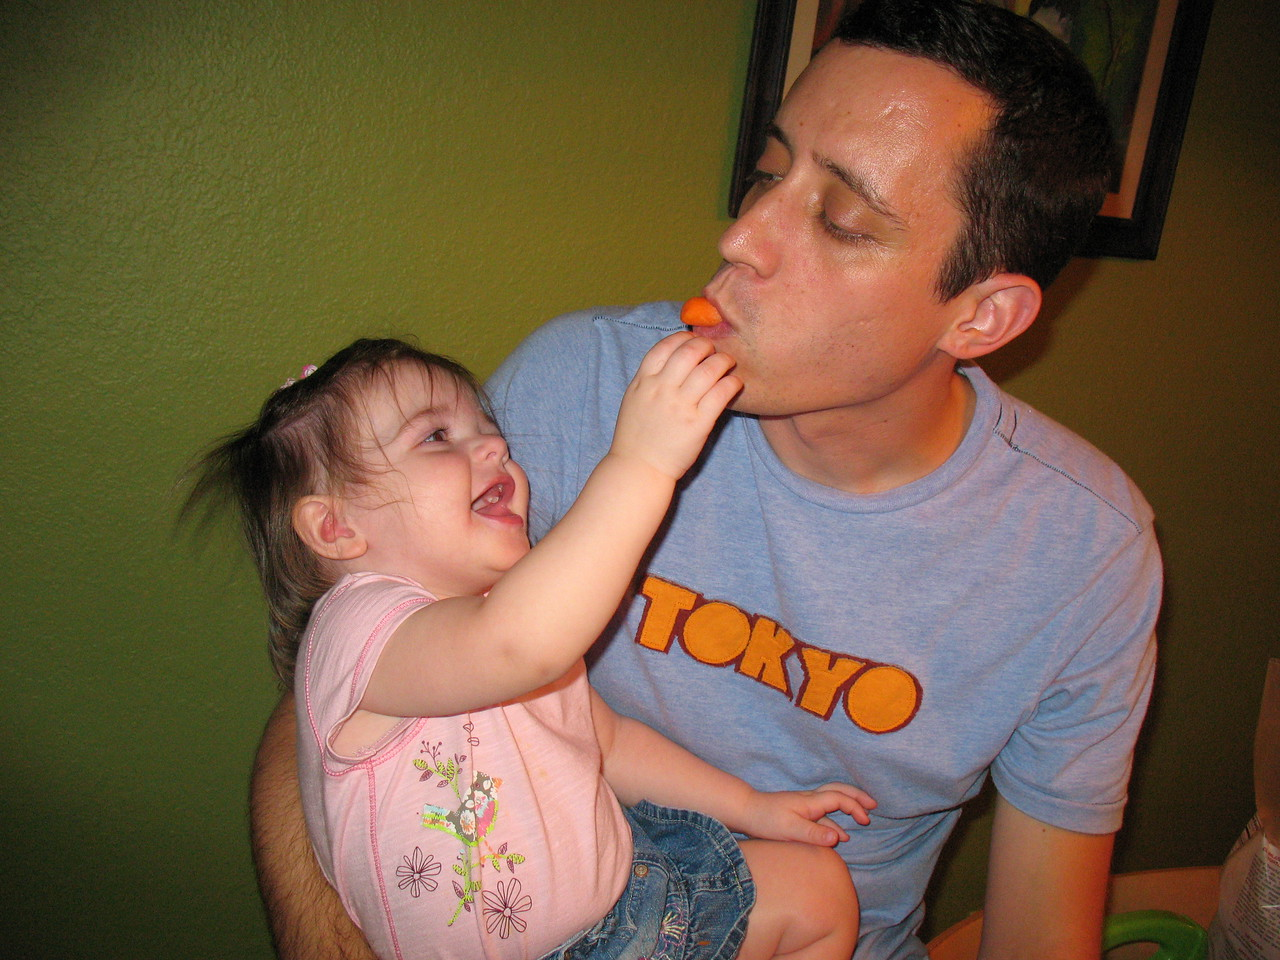 Stella feeds Daddy carrots, which is HI-larious!